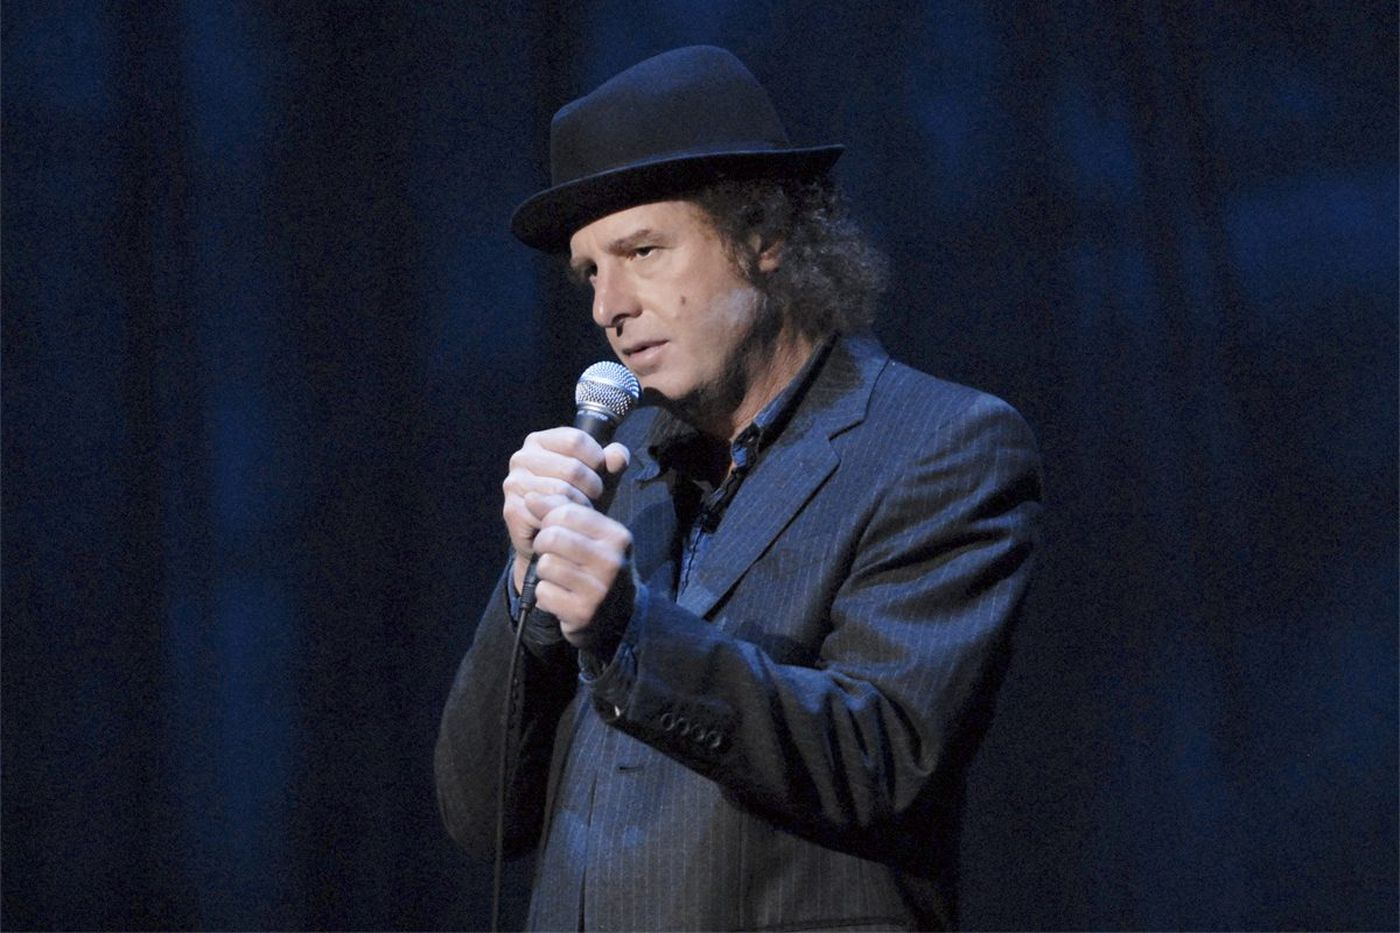 Steven Wright looks back on 40 years in comedy ahead of Philly show